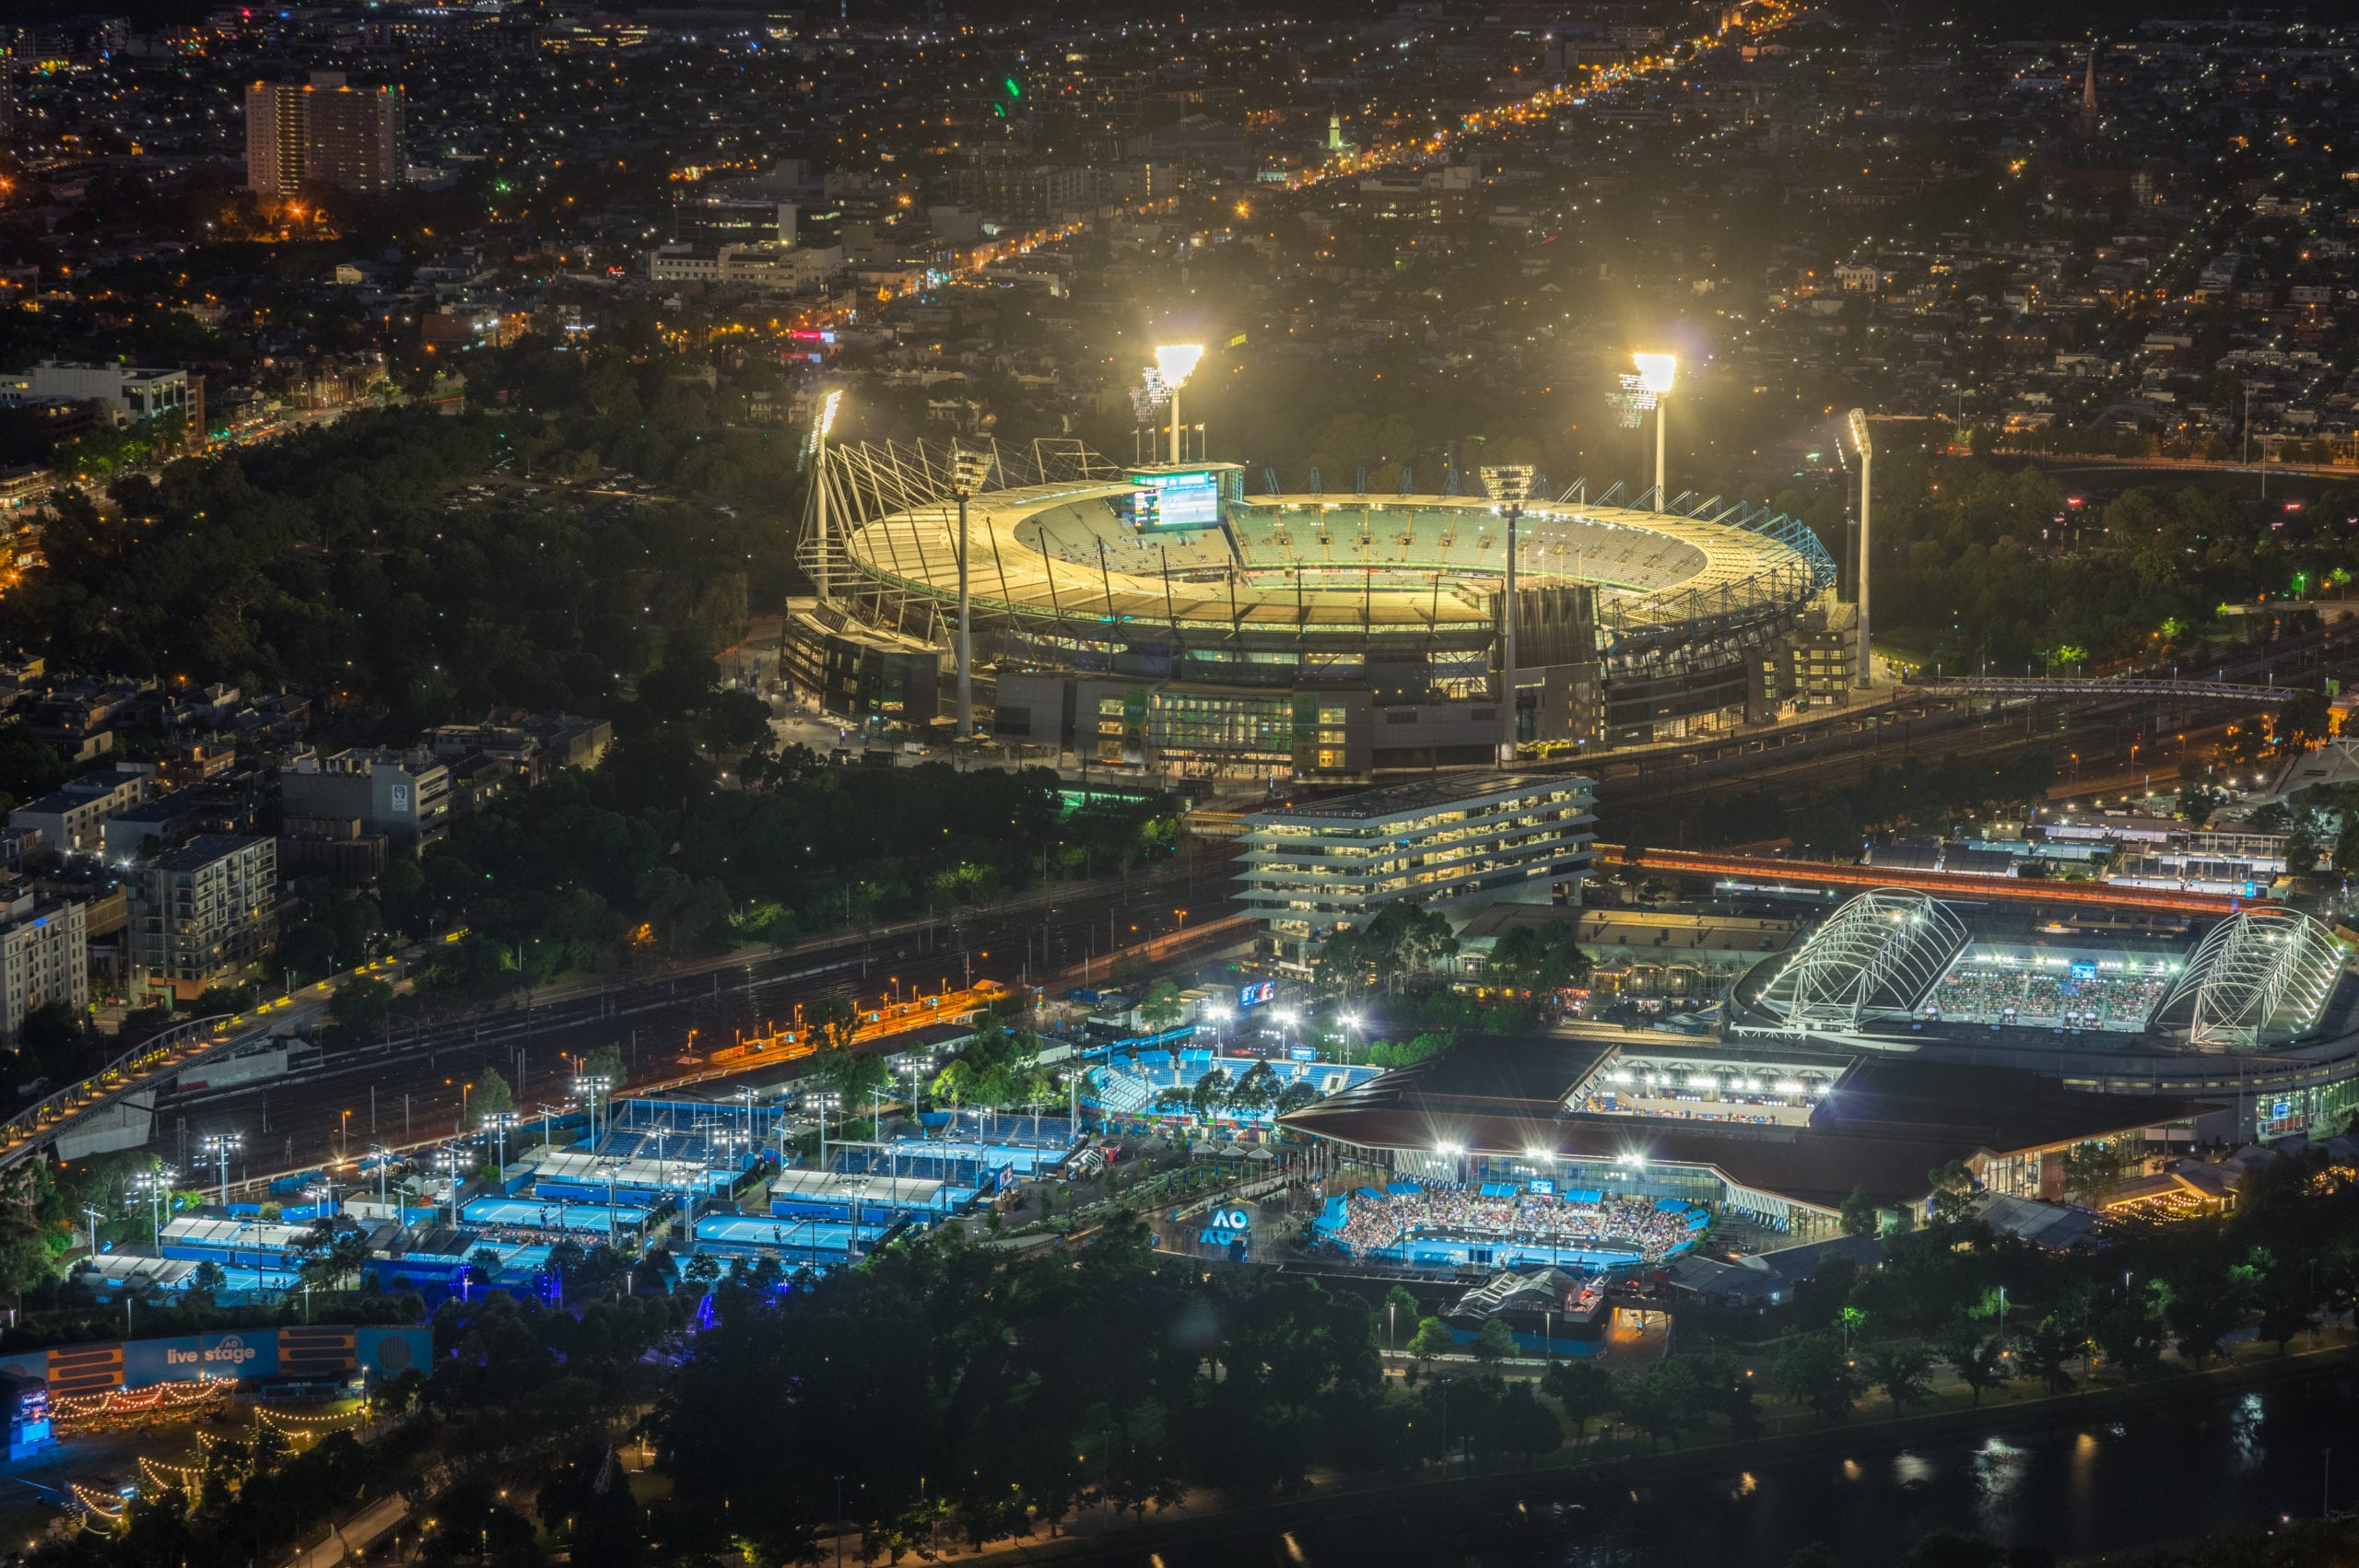 Melbourne Cricket Ground and Yarra Park tennis stadium illuminated at sunset.